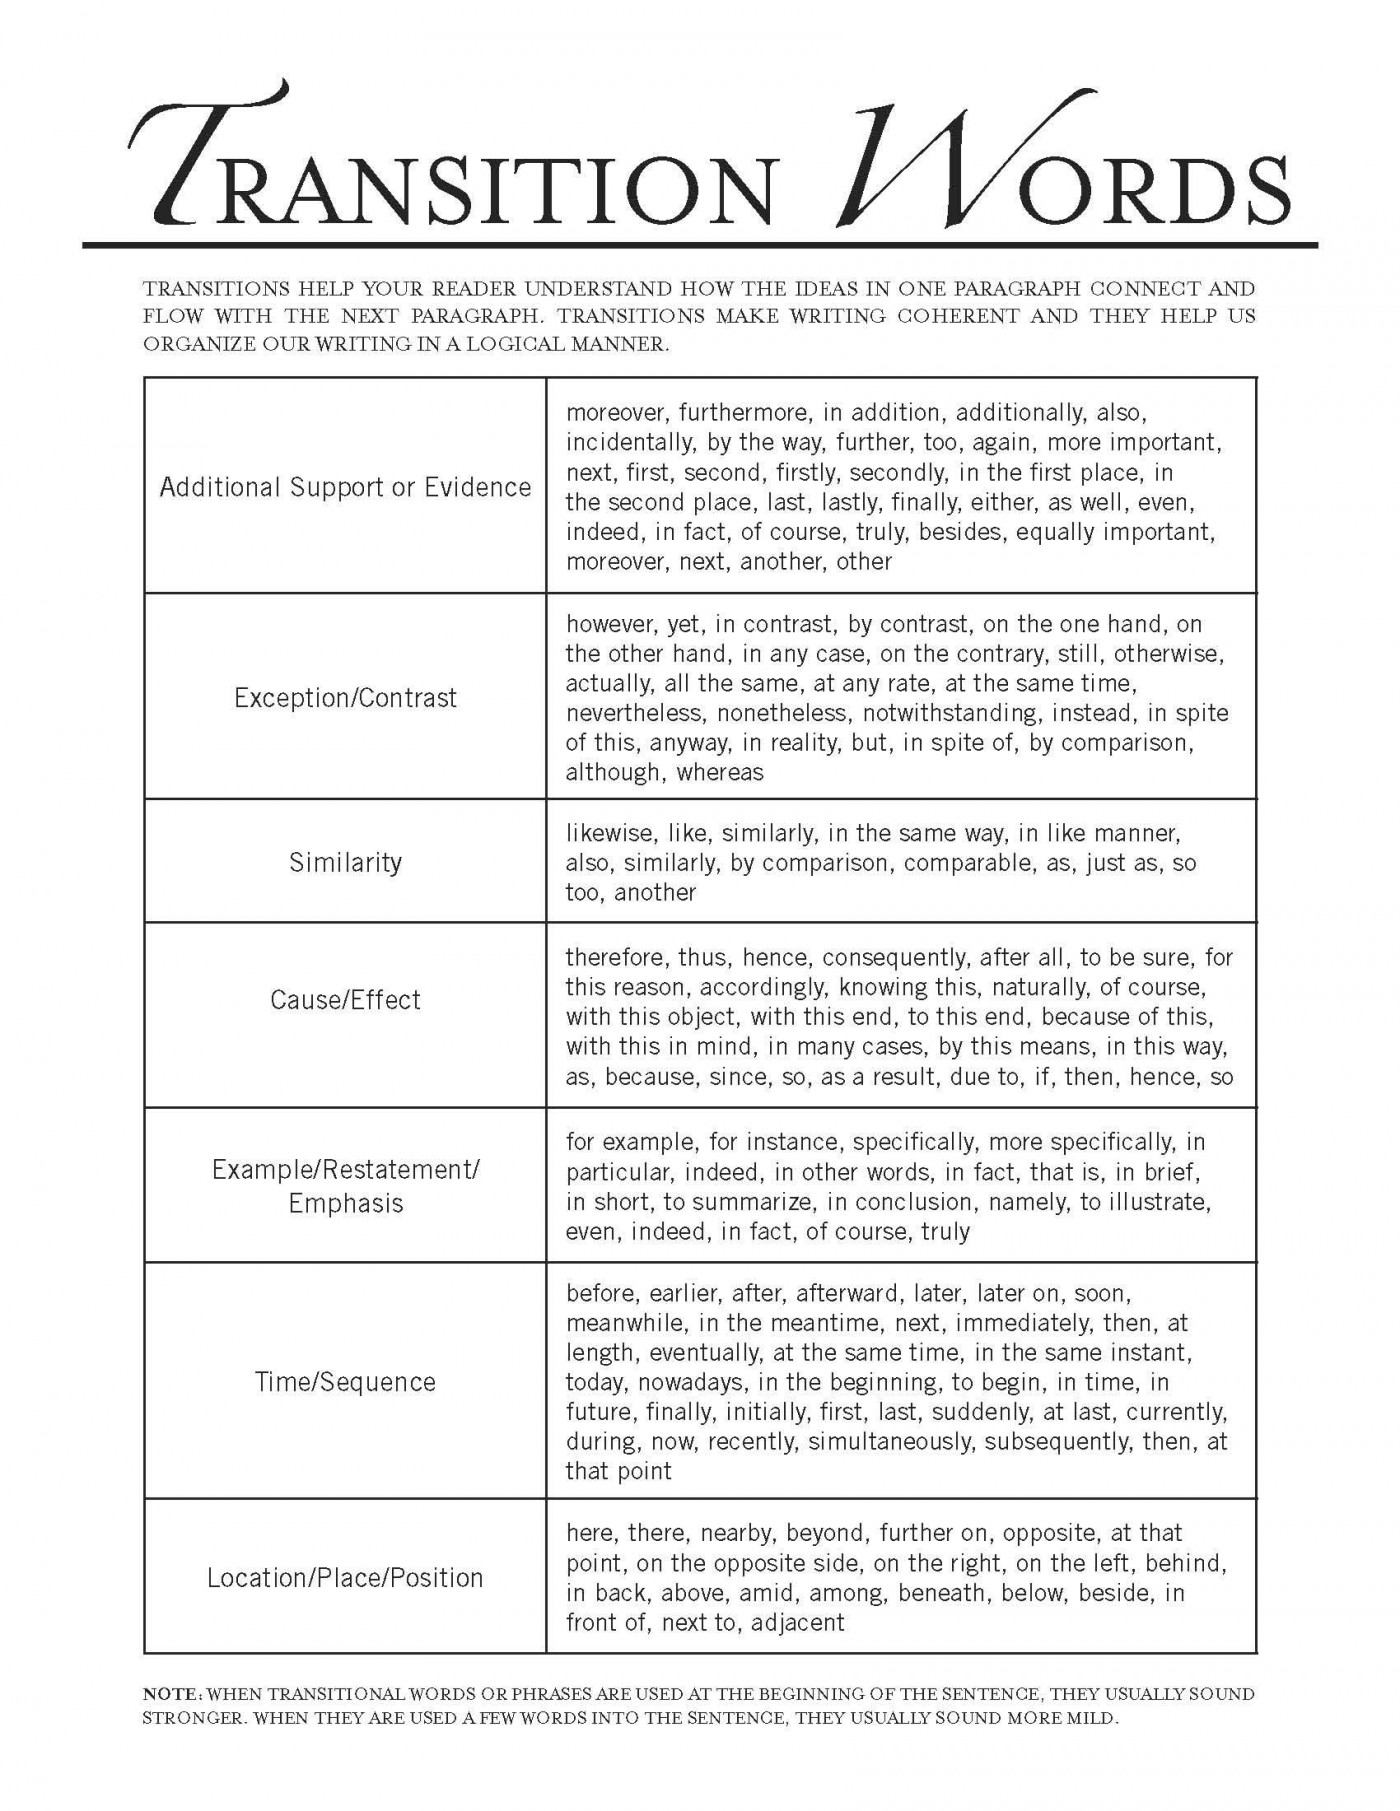 002 Essay Example Transition Words For Essays Rare And Phrases List Pdf 4th Grade Of Writing 1400